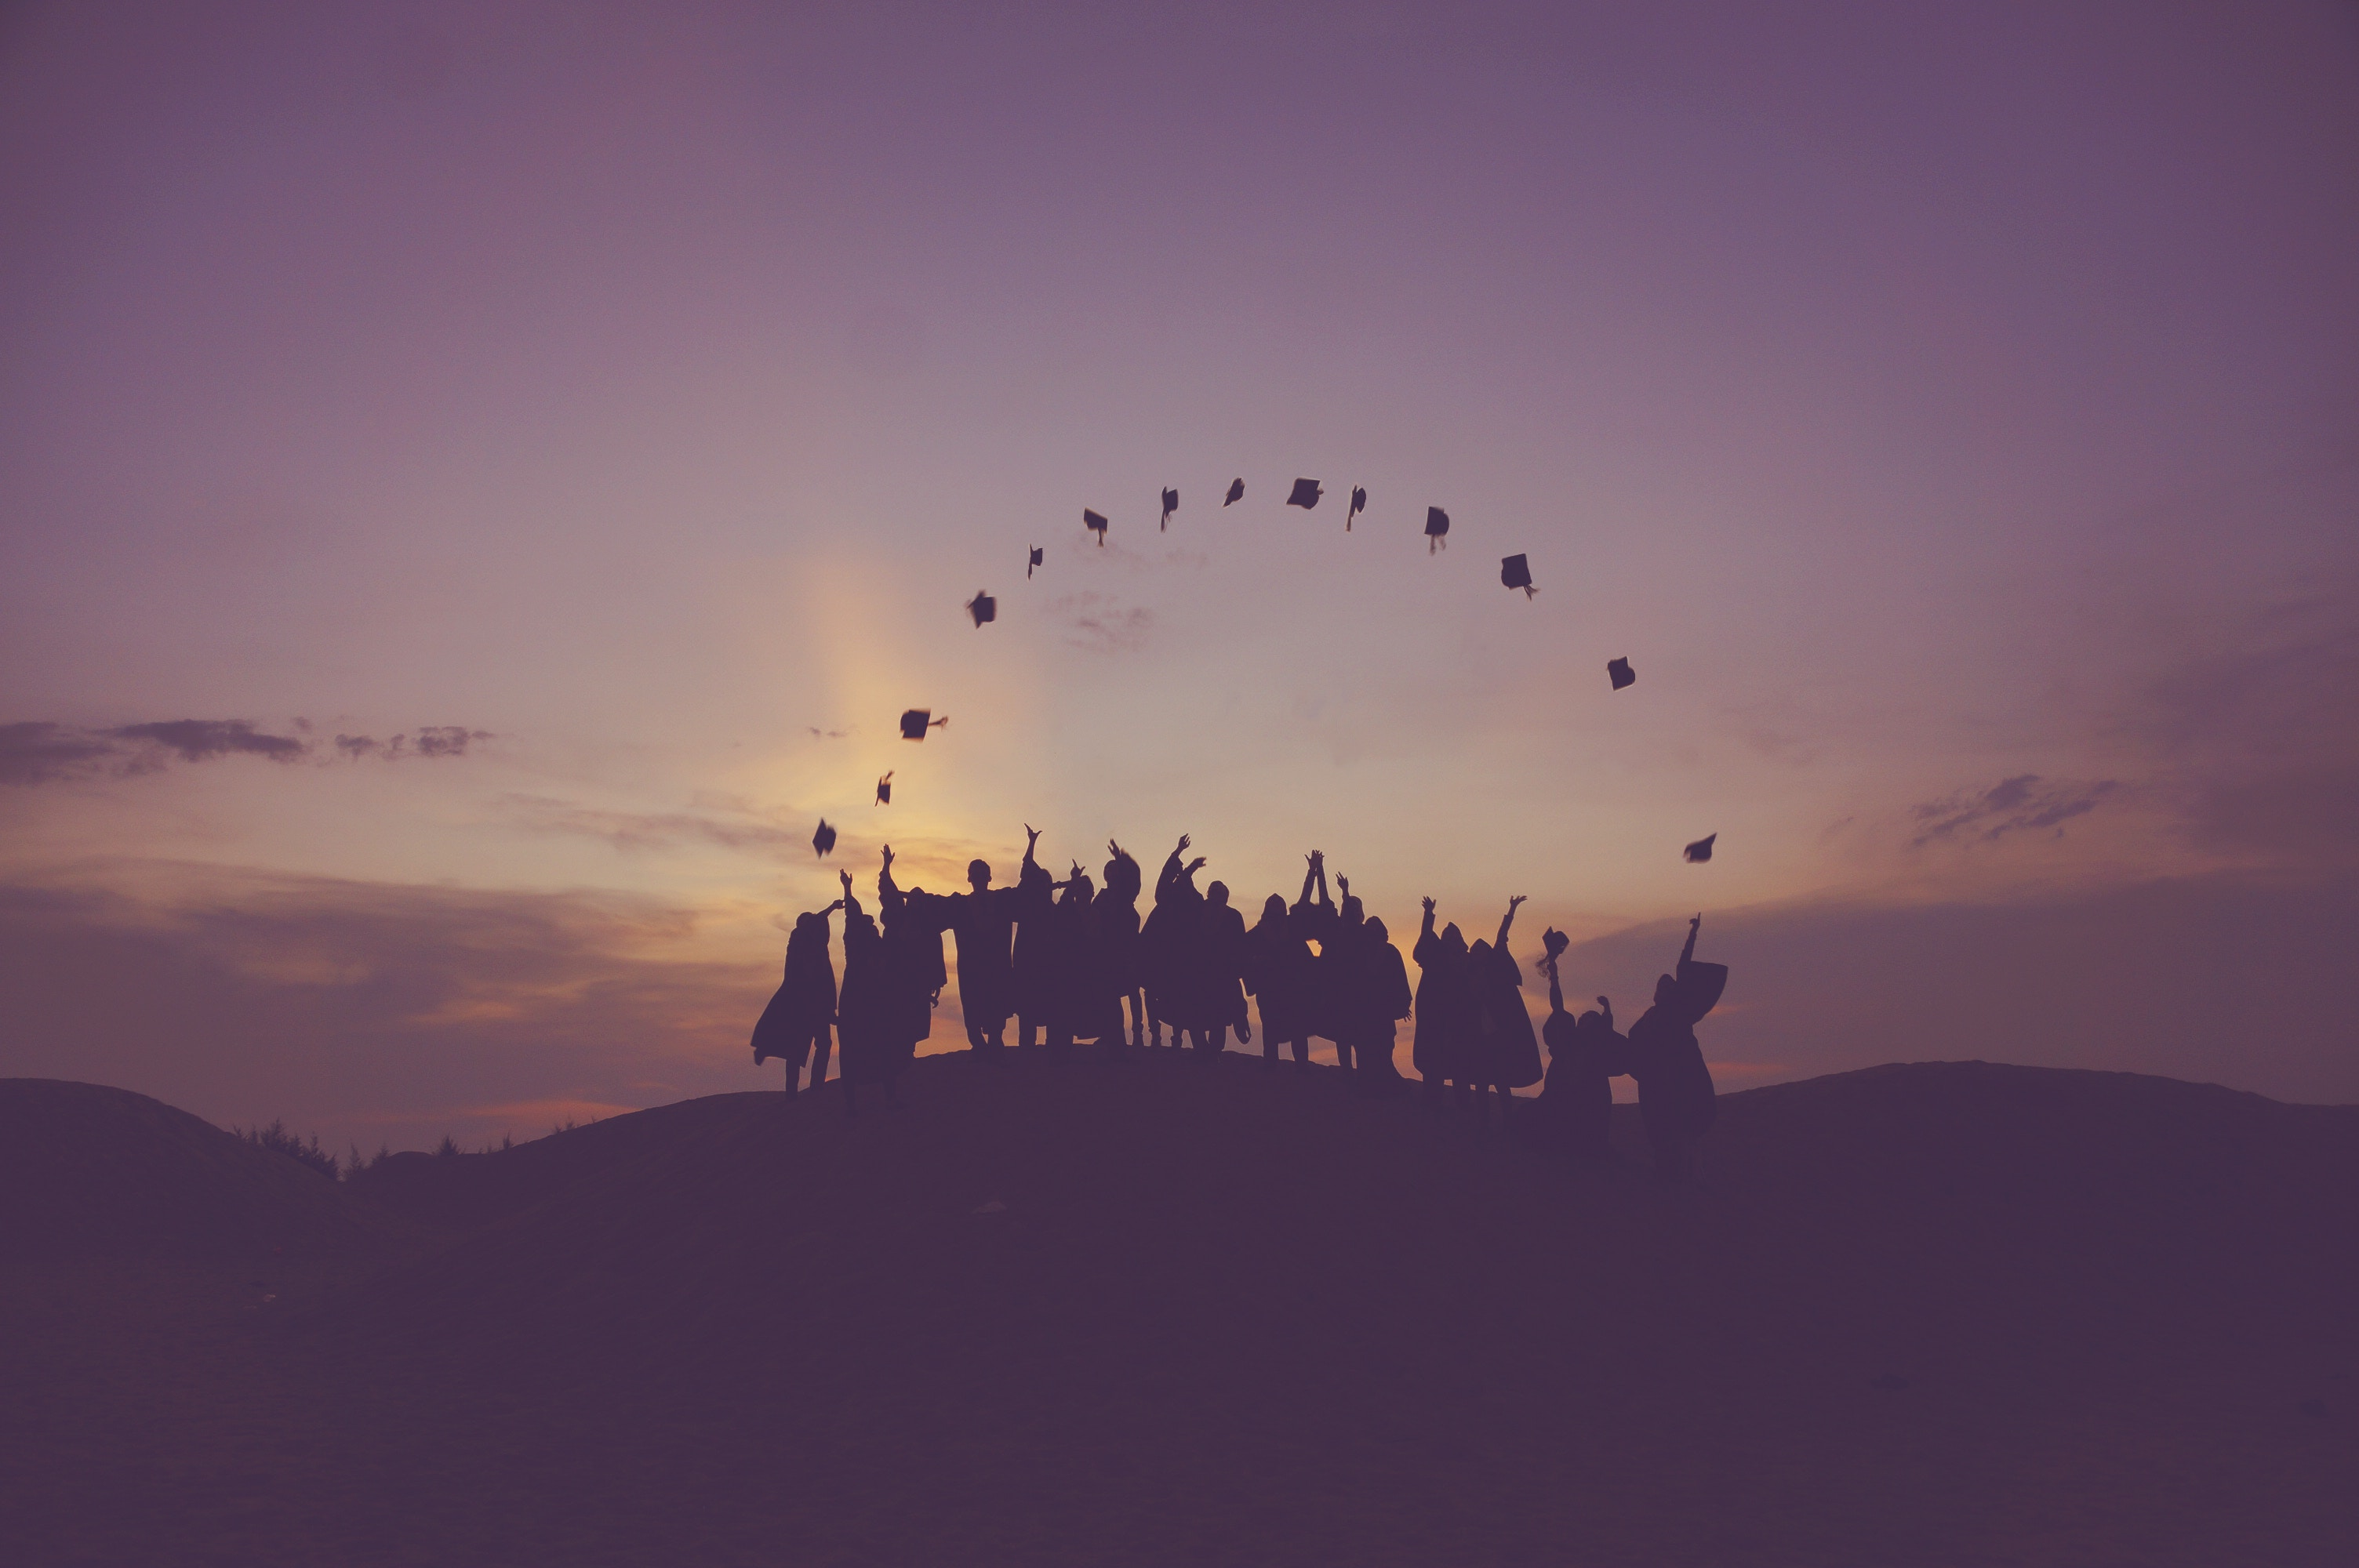 A silhouette of several people on a hill at sunset throwing their graduation caps into the sky.